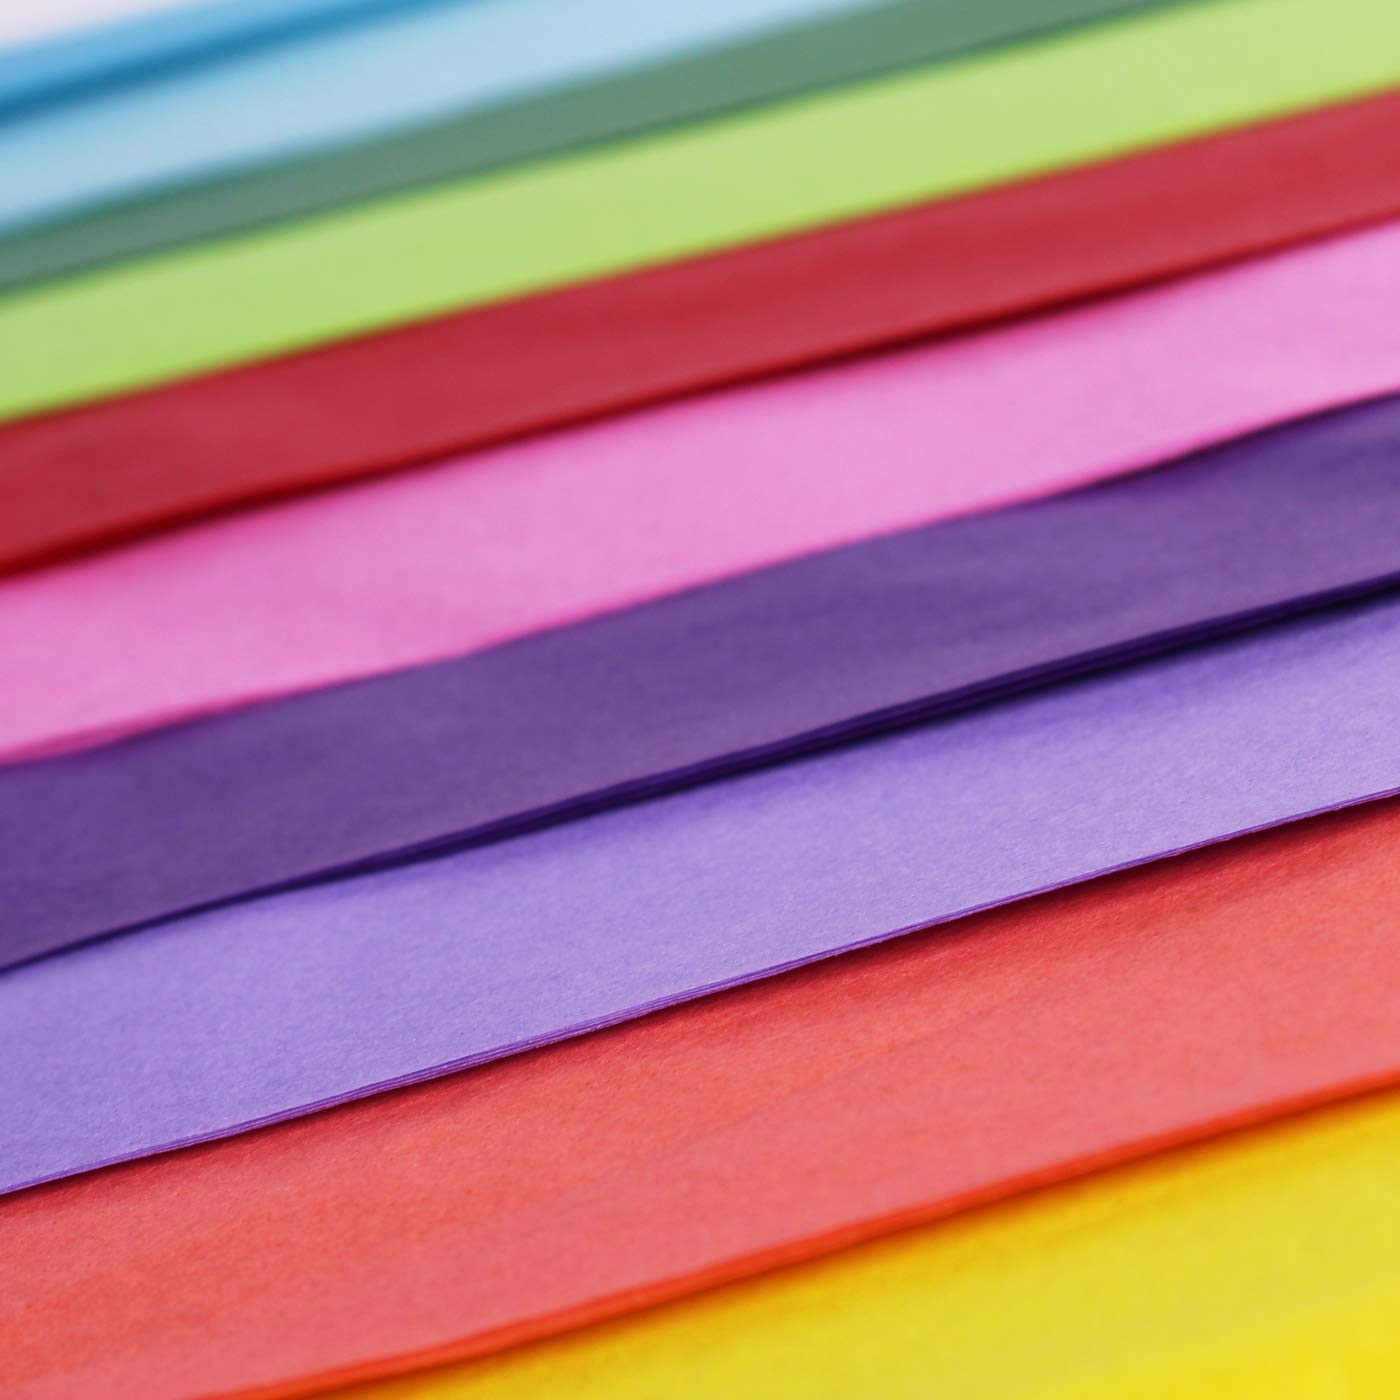 20 x 30 50pc Bobopai 2 x 50 x Multi Coloured Tissue Paper//Gift Wrap//Wrapping Paper Sheets